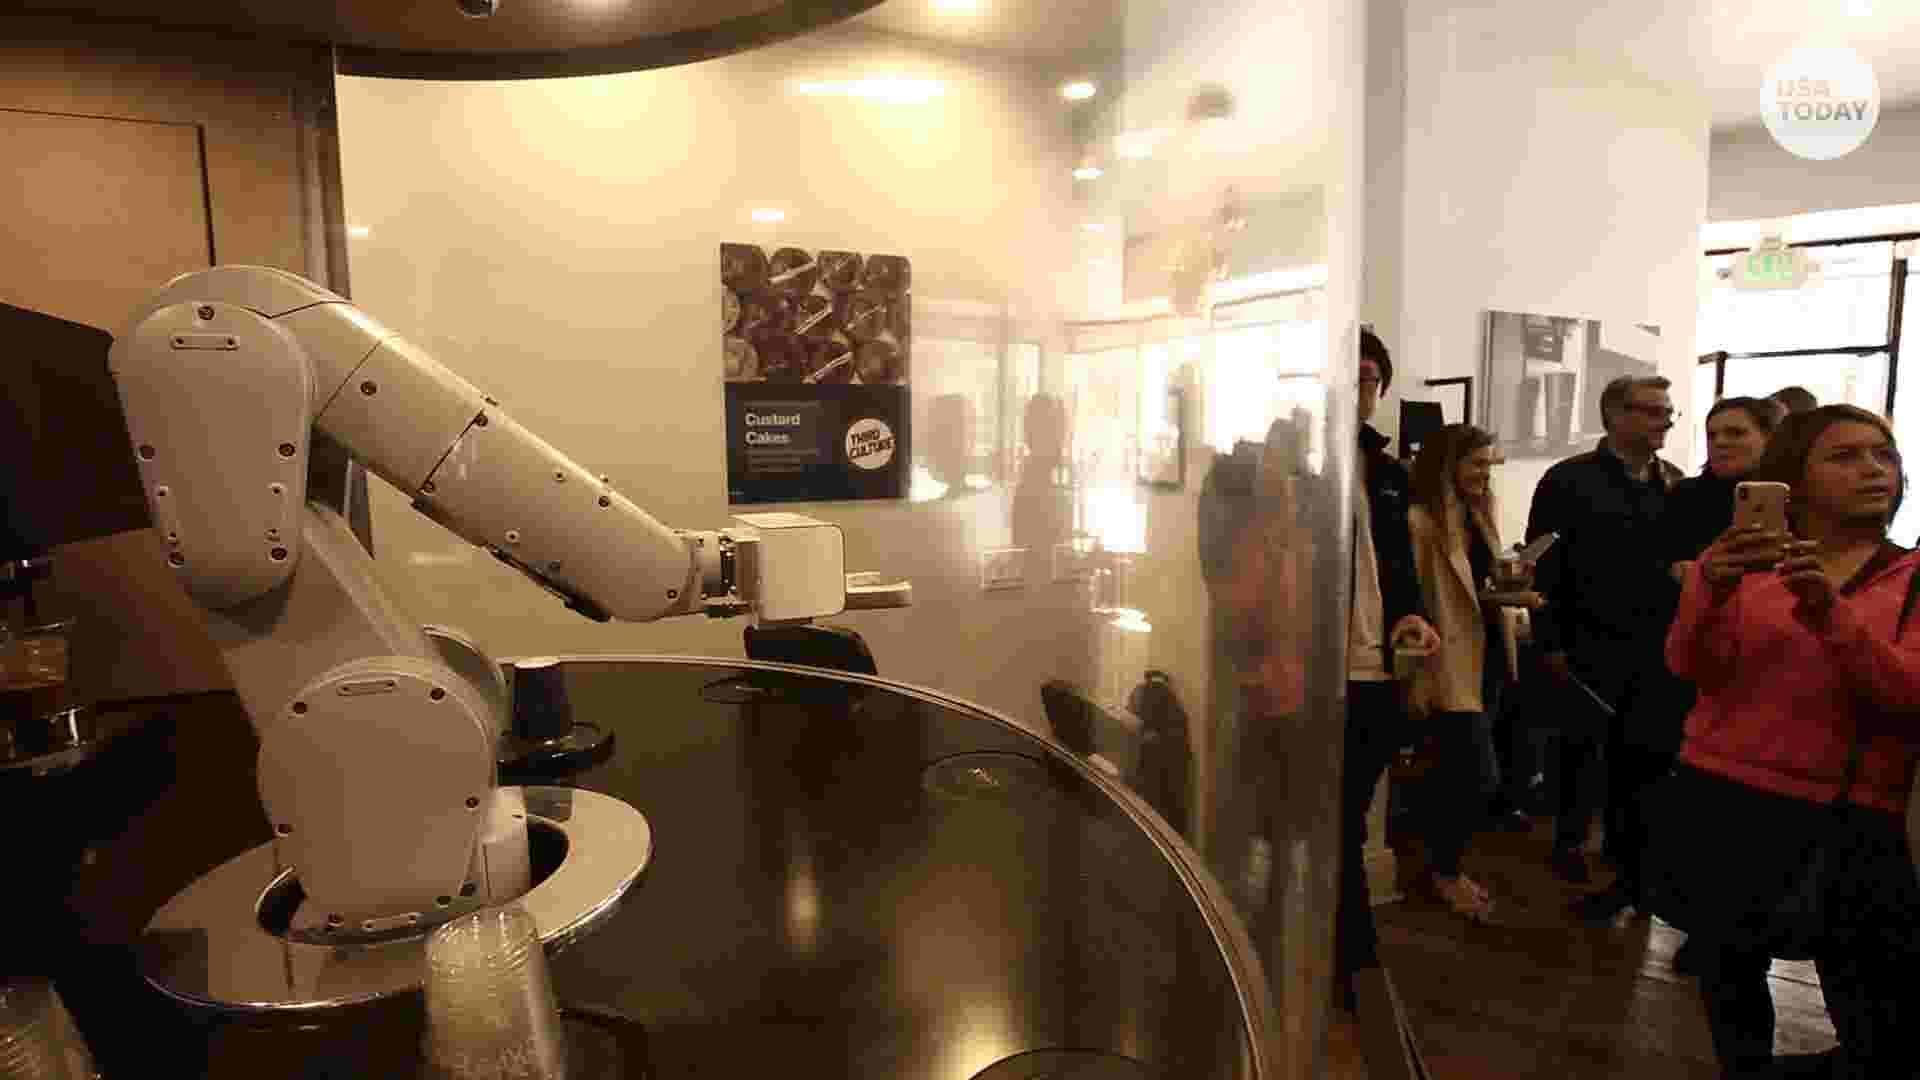 Robots invade foodie San Francisco, promising low prices, tasty meals and cheap labor